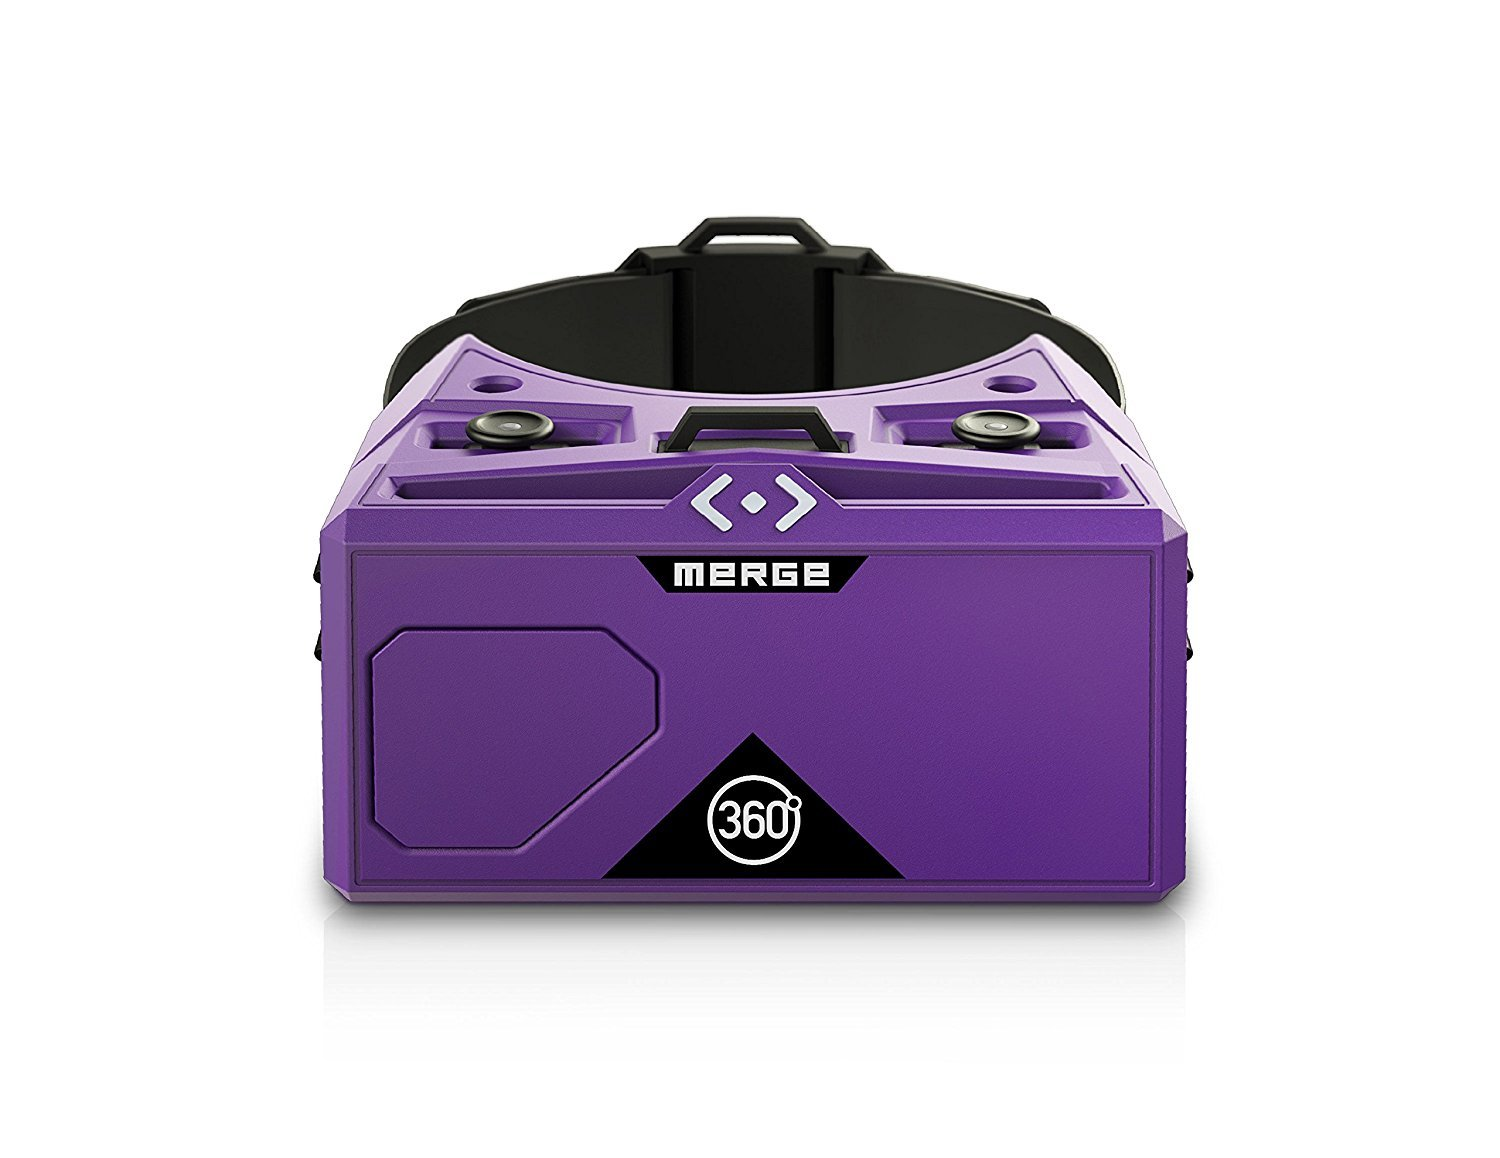 Merge VR/AR Goggles - Virtual and Augmented Reality Headset for iPhone and Android - Adjustable Lenses, Dual Input Buttons, Soft and Comfortable, Easy to Clean and Share, For Kids 10+ (Pulsar Purple)